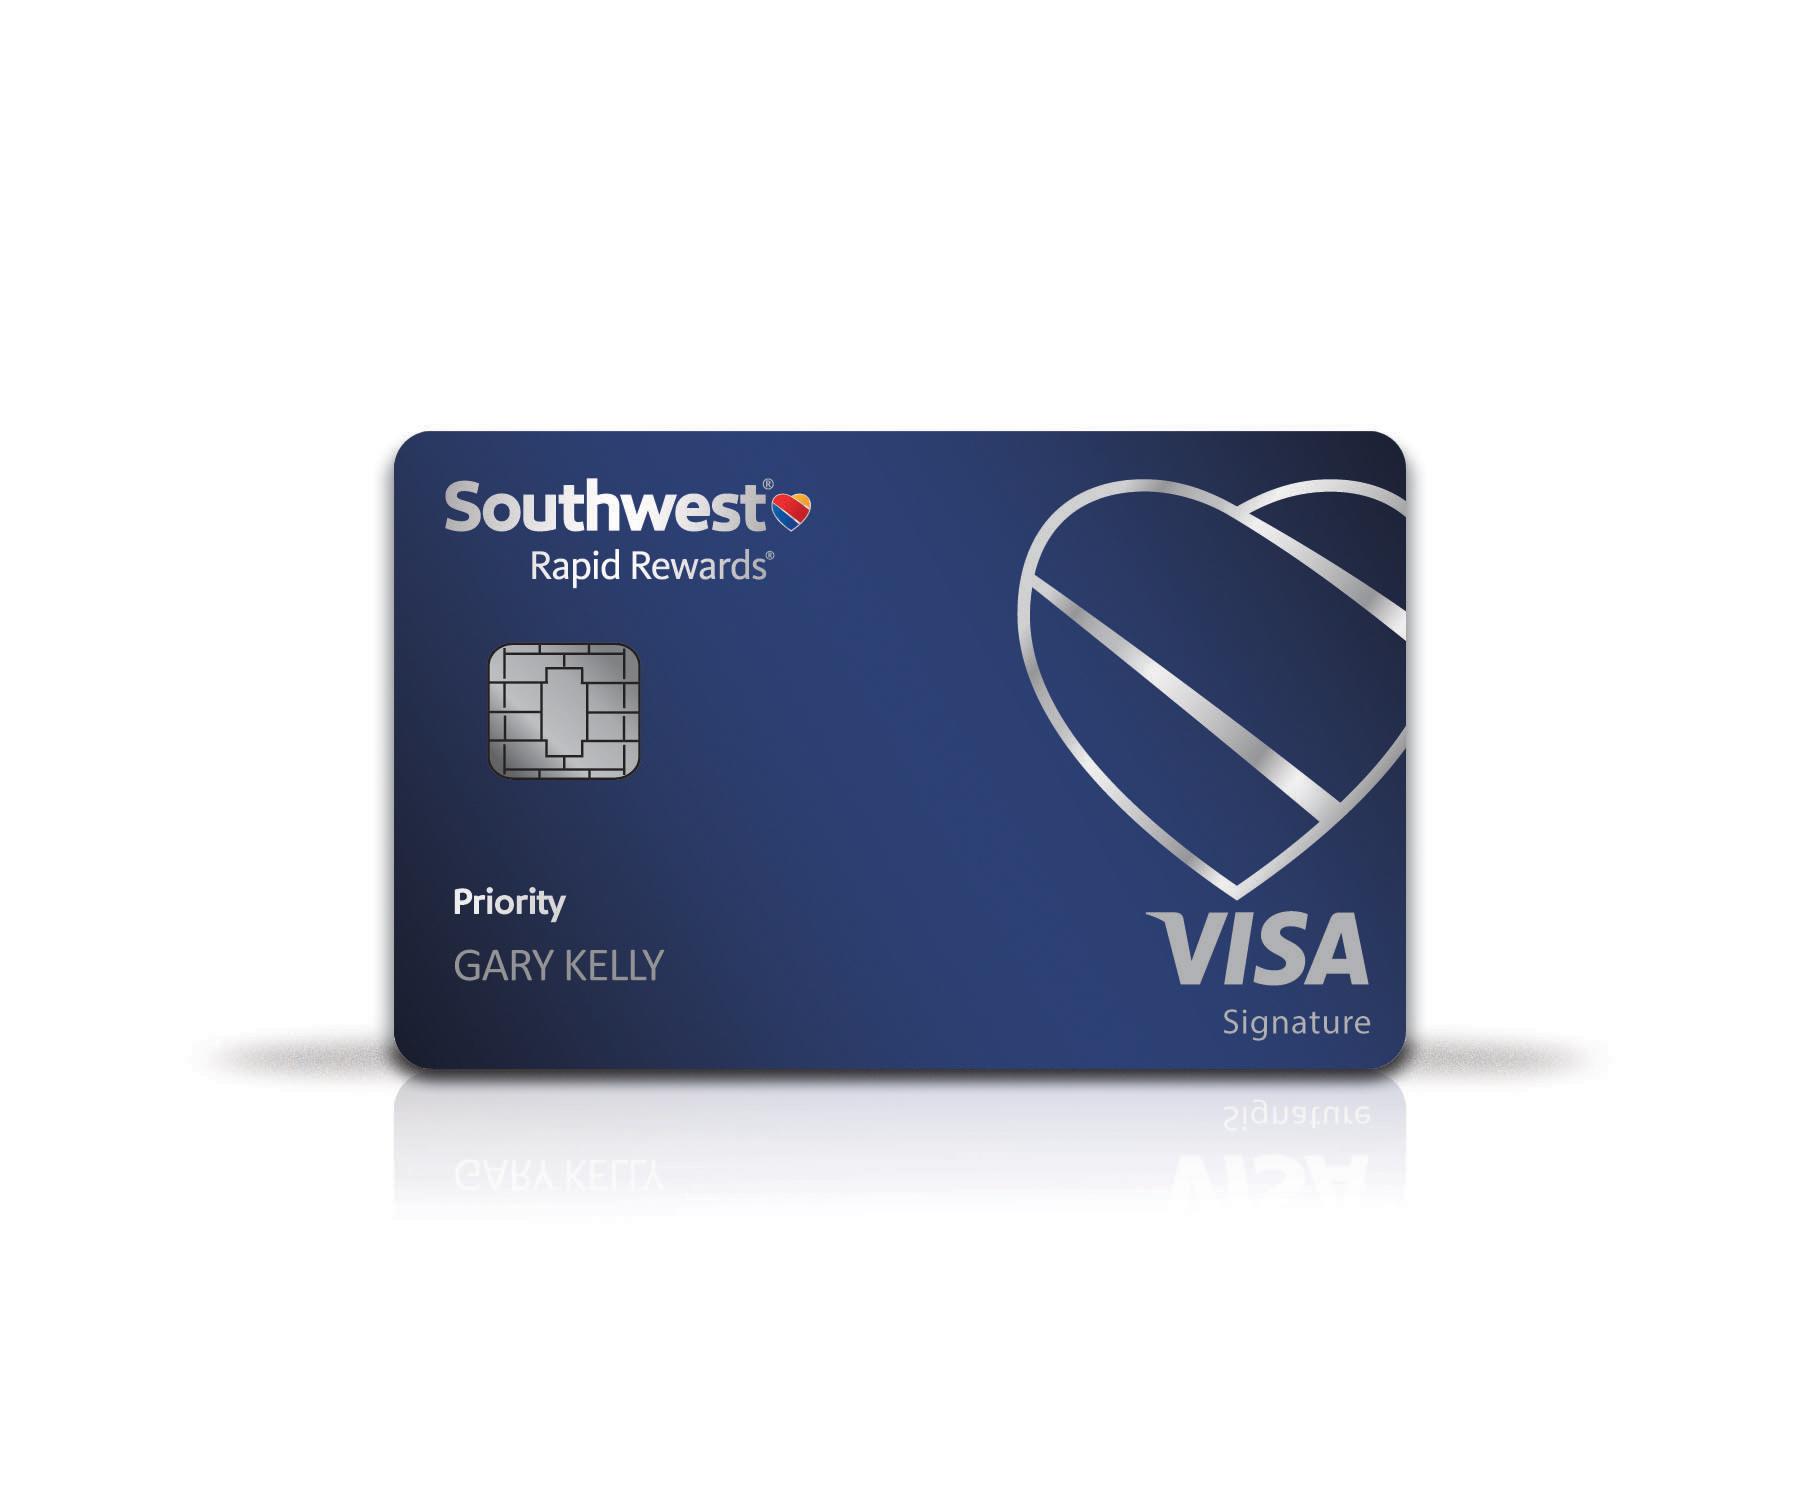 New southwest rapid rewards priority card takes flight business wire media relations team 214 792 4847 option 1 visit the southwest newsroom at swamedia for multi media assets and other company news reheart Gallery